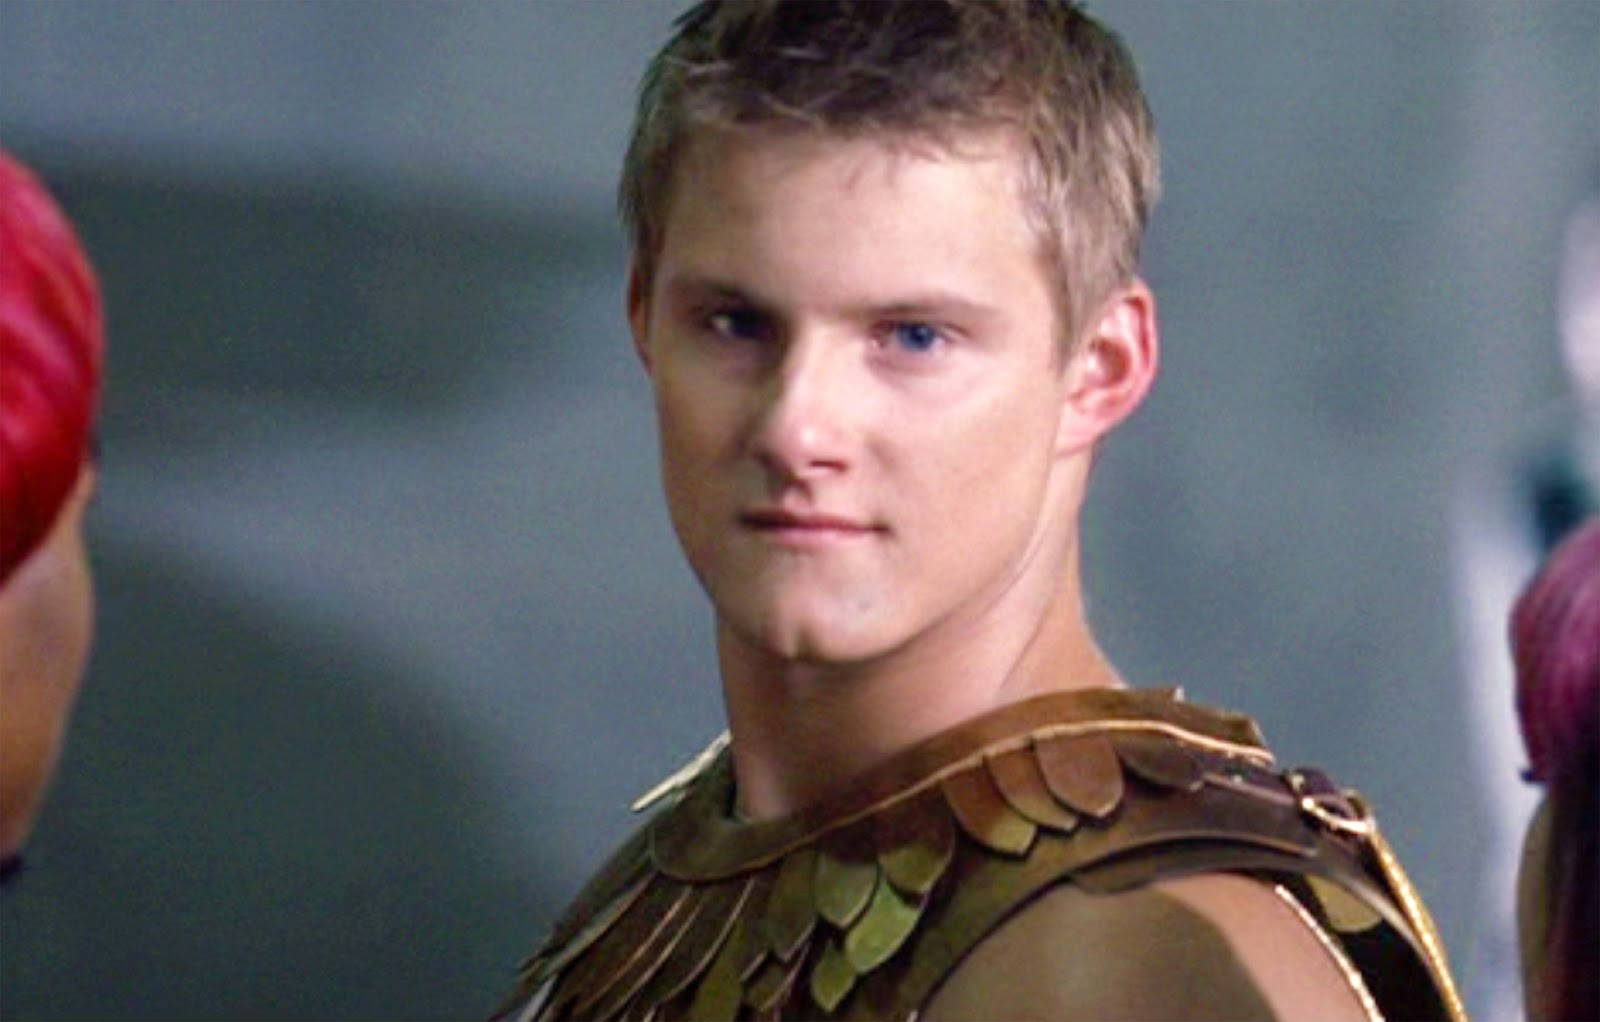 cato images the hunger - photo #12